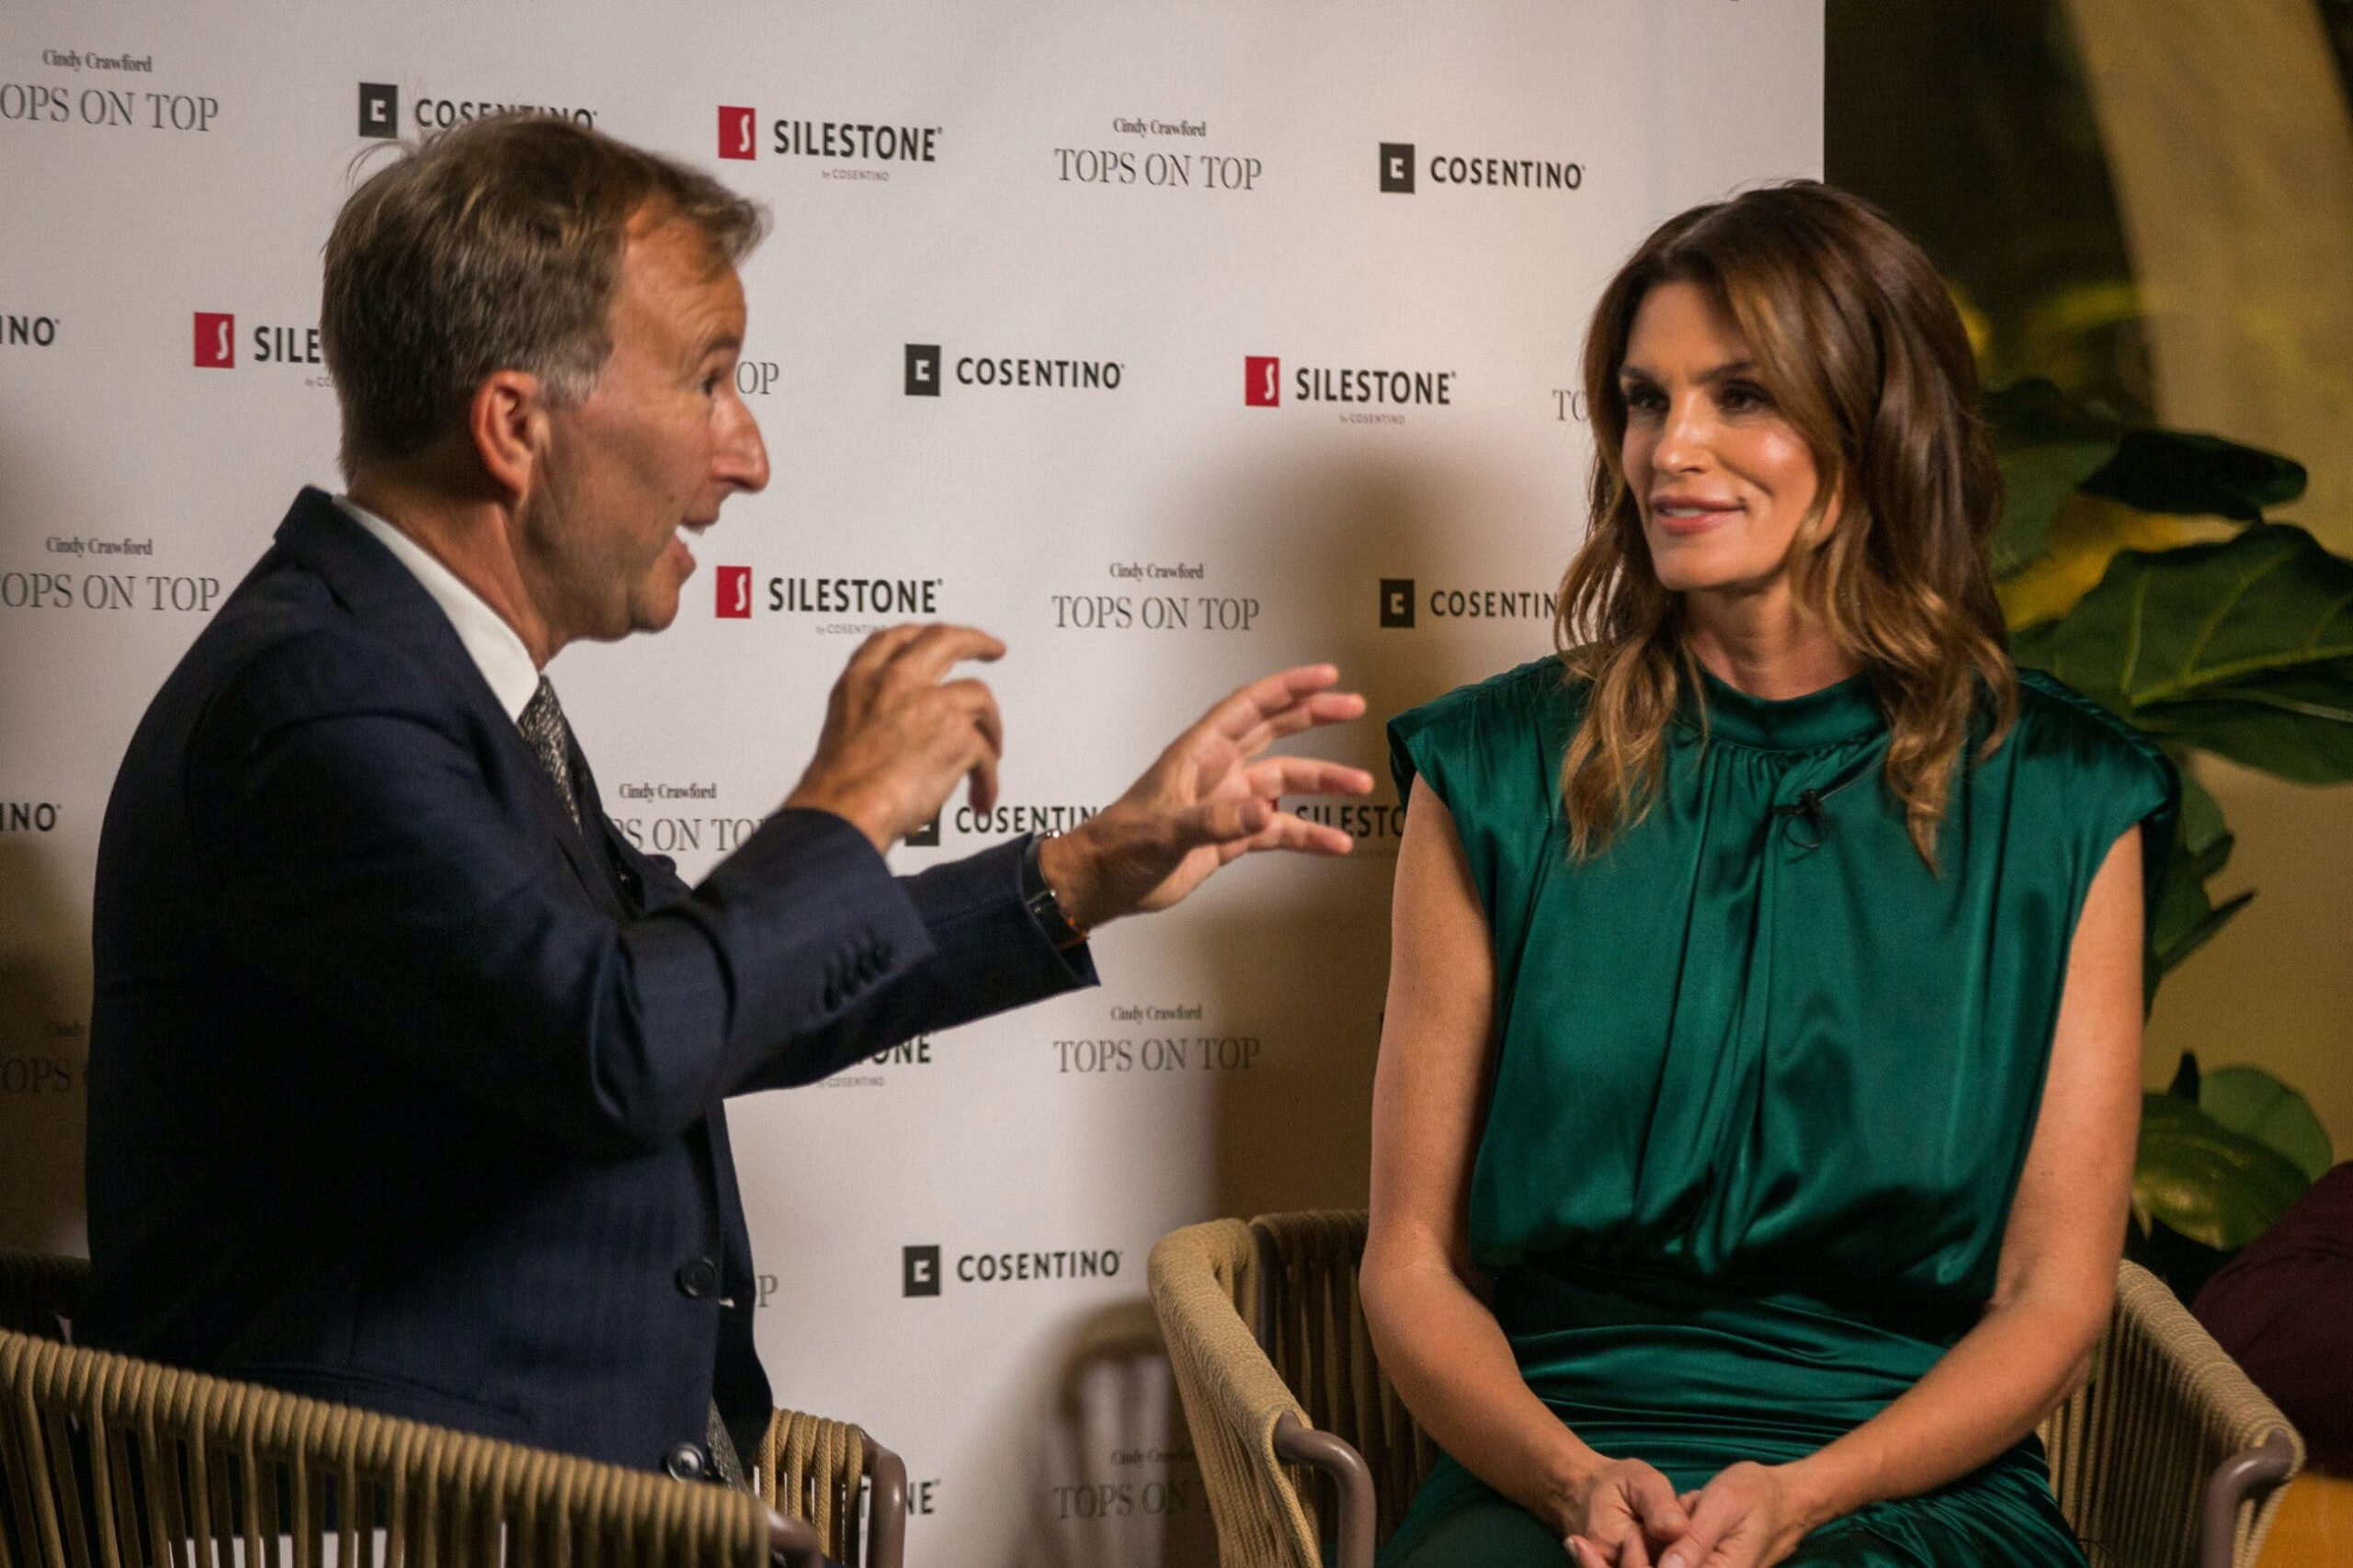 """Image of Tony Chambers y Cindy Crawford Silestone Londres 3 scaled in Silestone® Presents its New """"Tops on Top 2019"""" Campaign Featuring Cindy Crawford - Cosentino"""